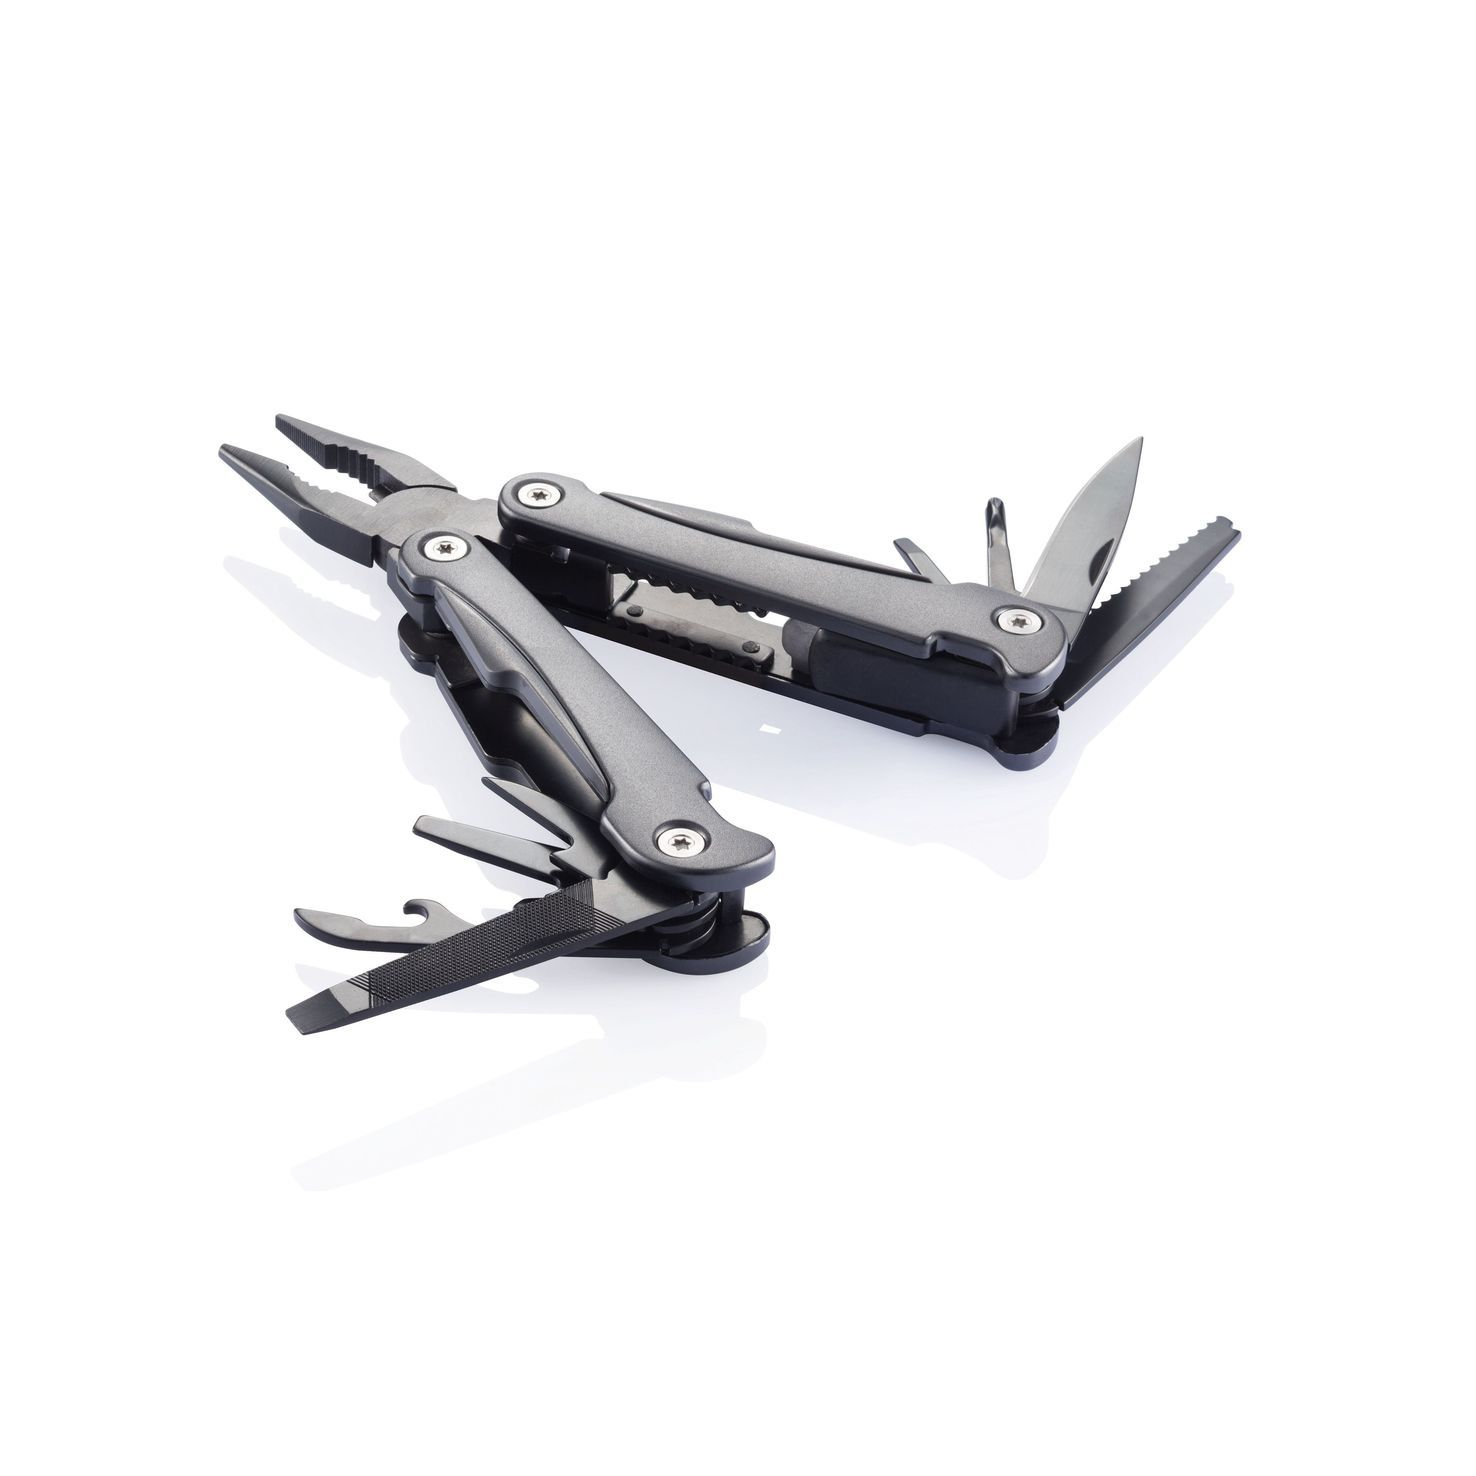 Zwarte Multitool | Swiss Peak